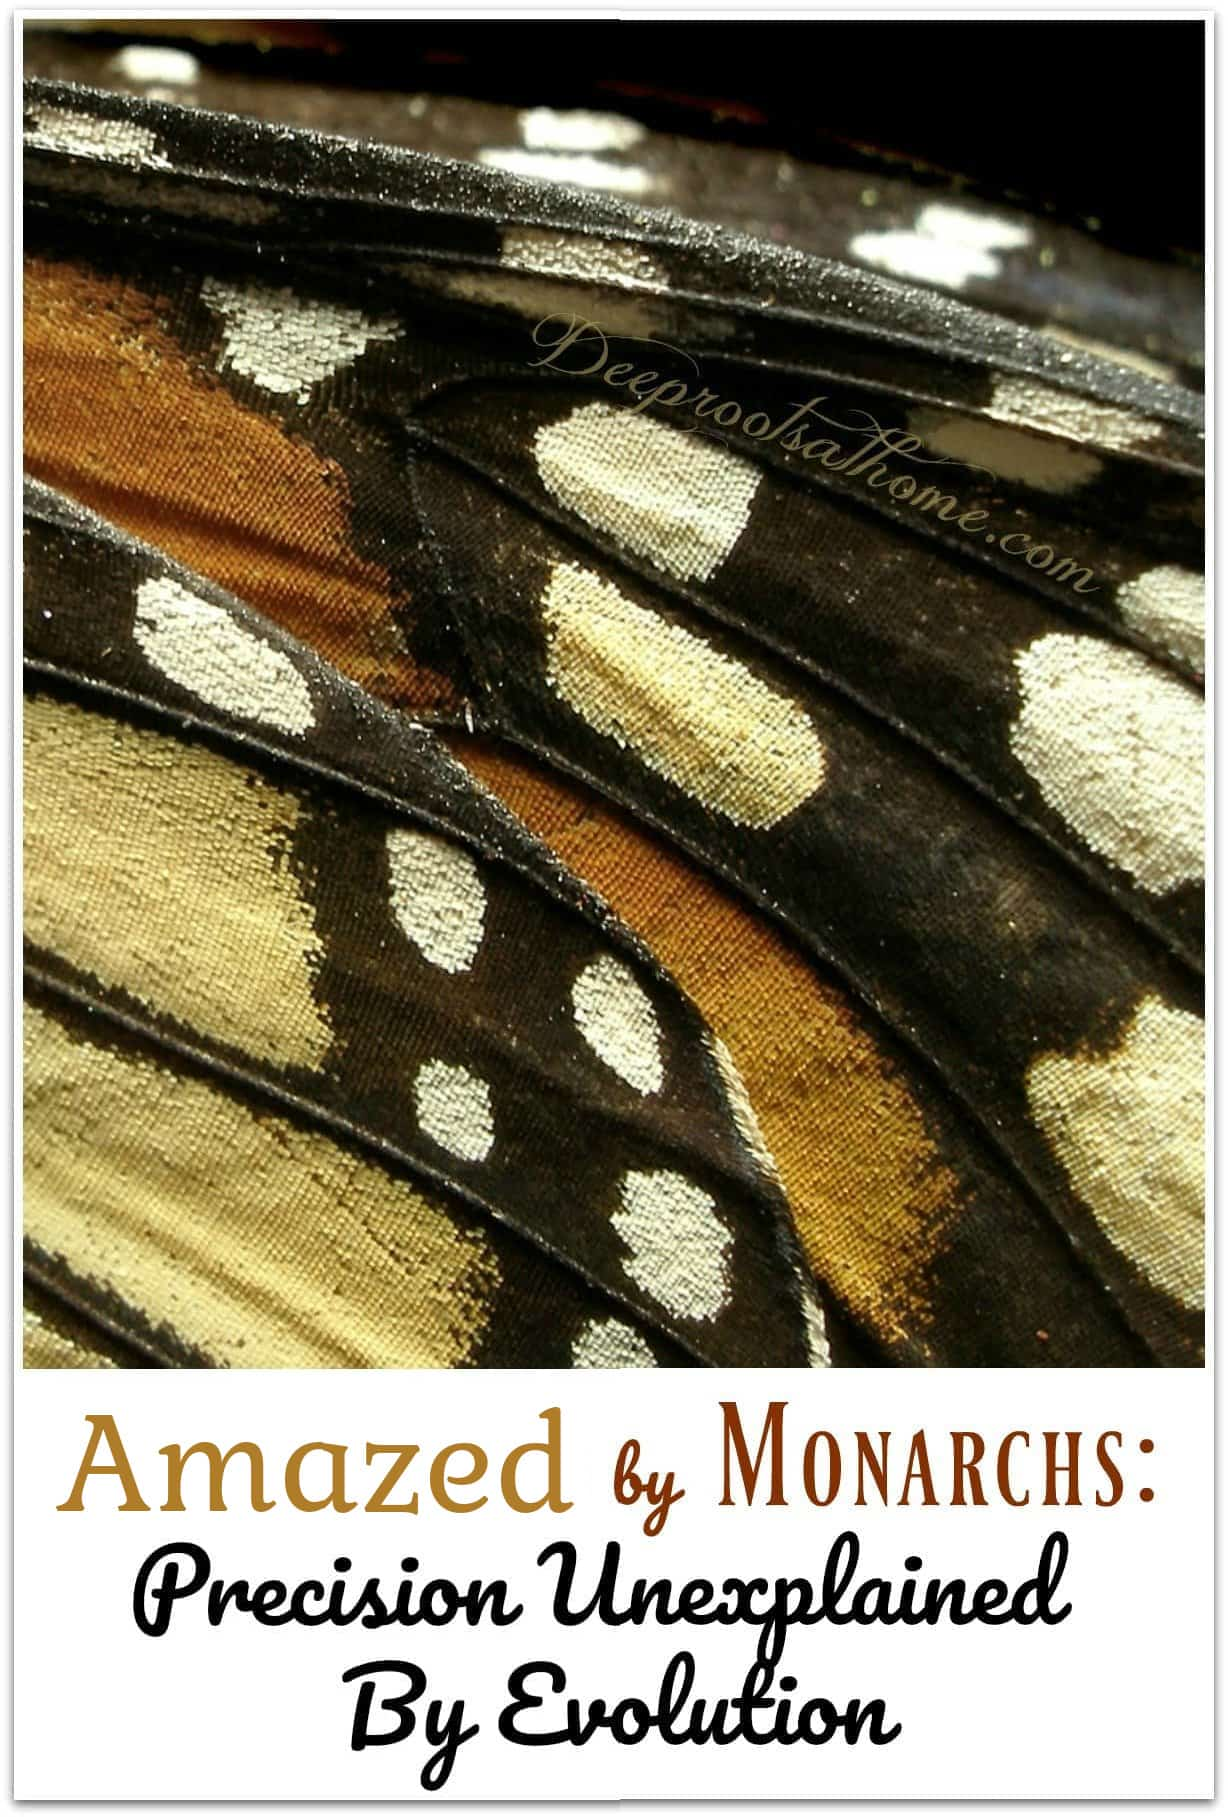 Amazed by Monarchs: Precision Unexplained By Evolution. wings